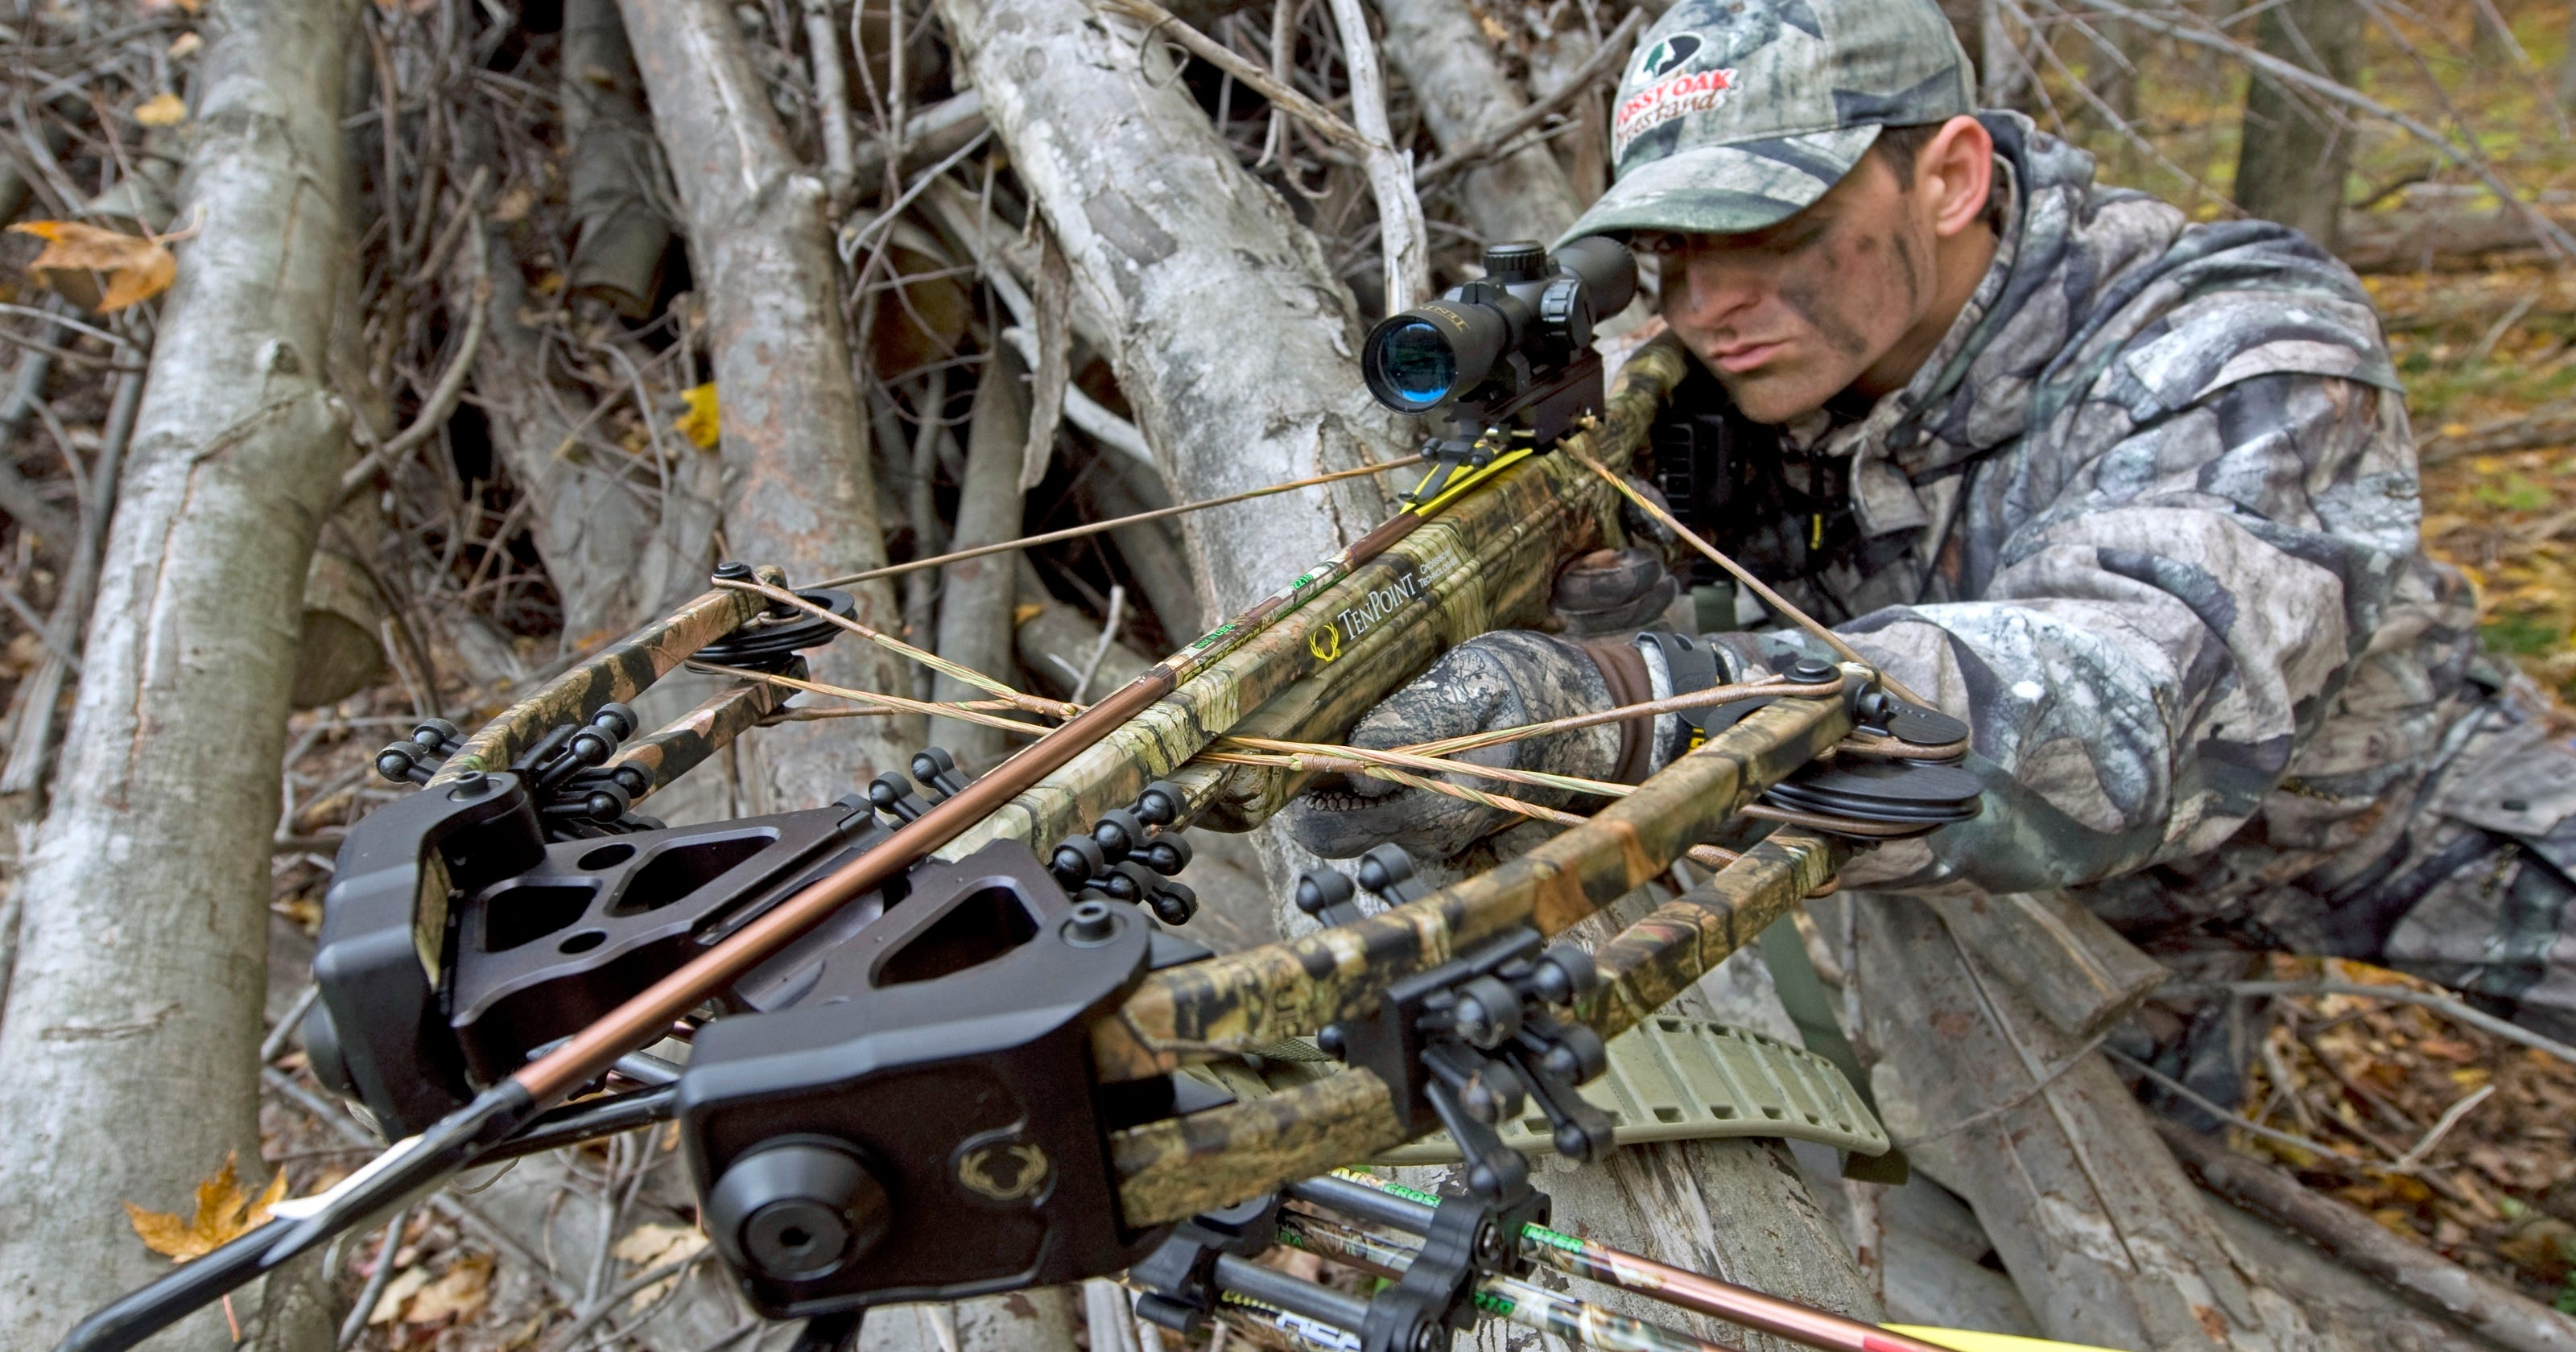 Crossbows and spikehorns may be in store for deer hunters